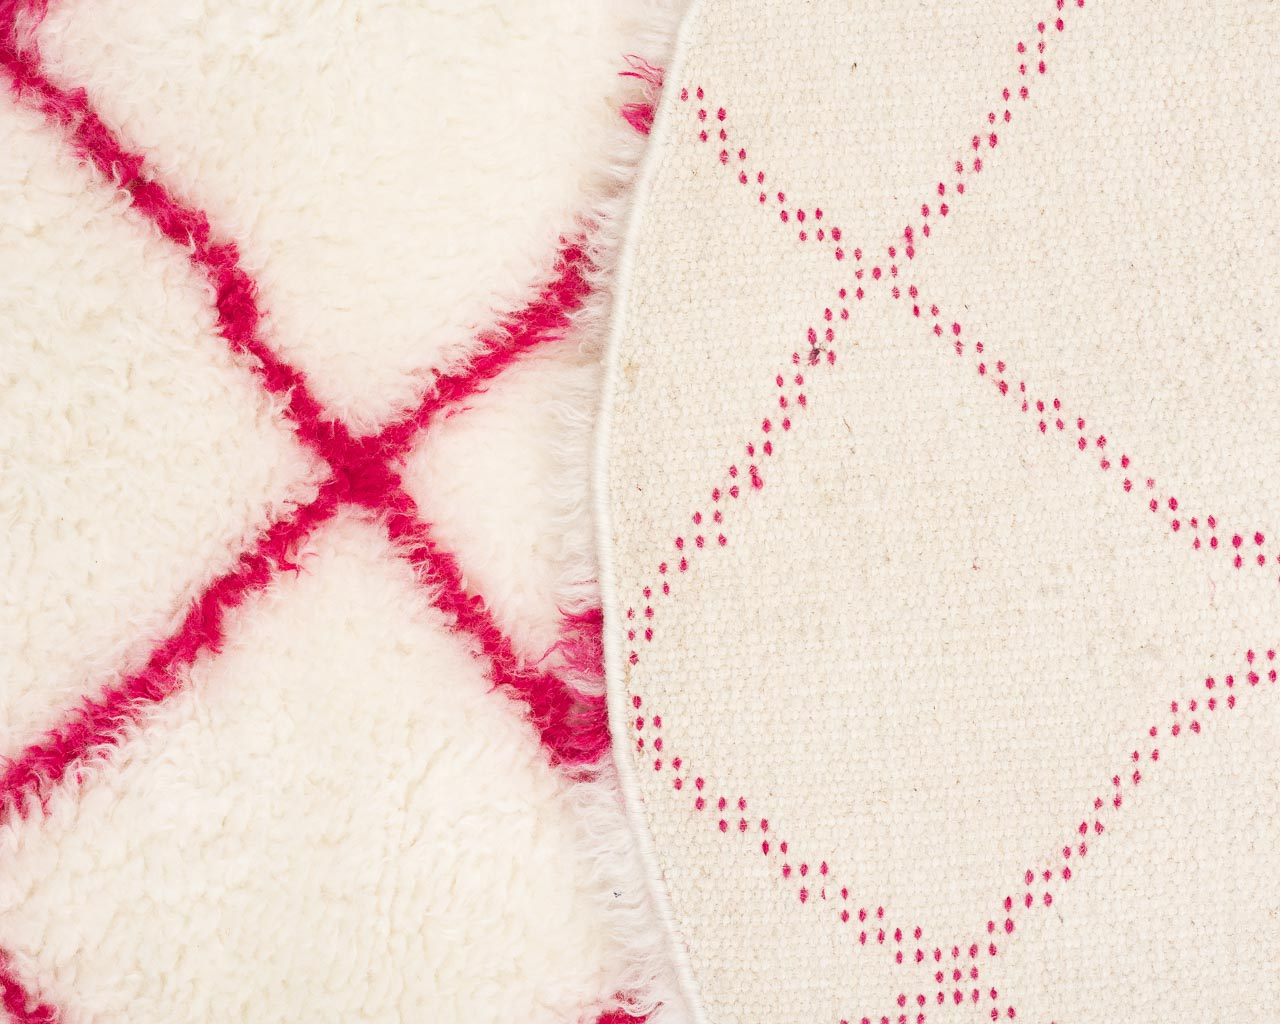 rugs for everyday use in white shades